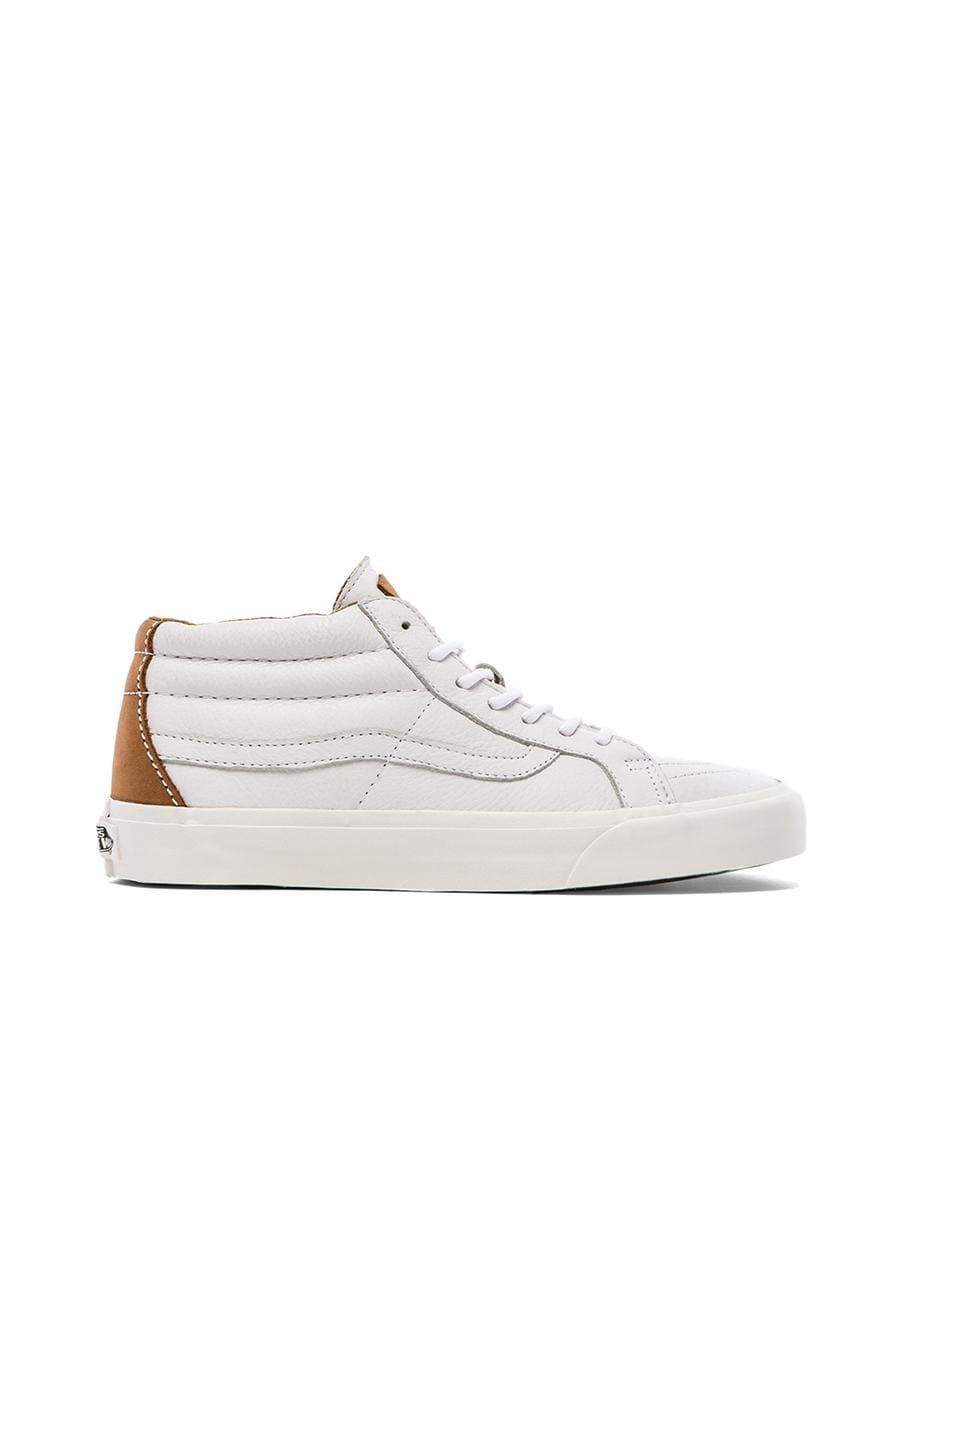 Vans California Sk8 Mid Nappa Leather in True White